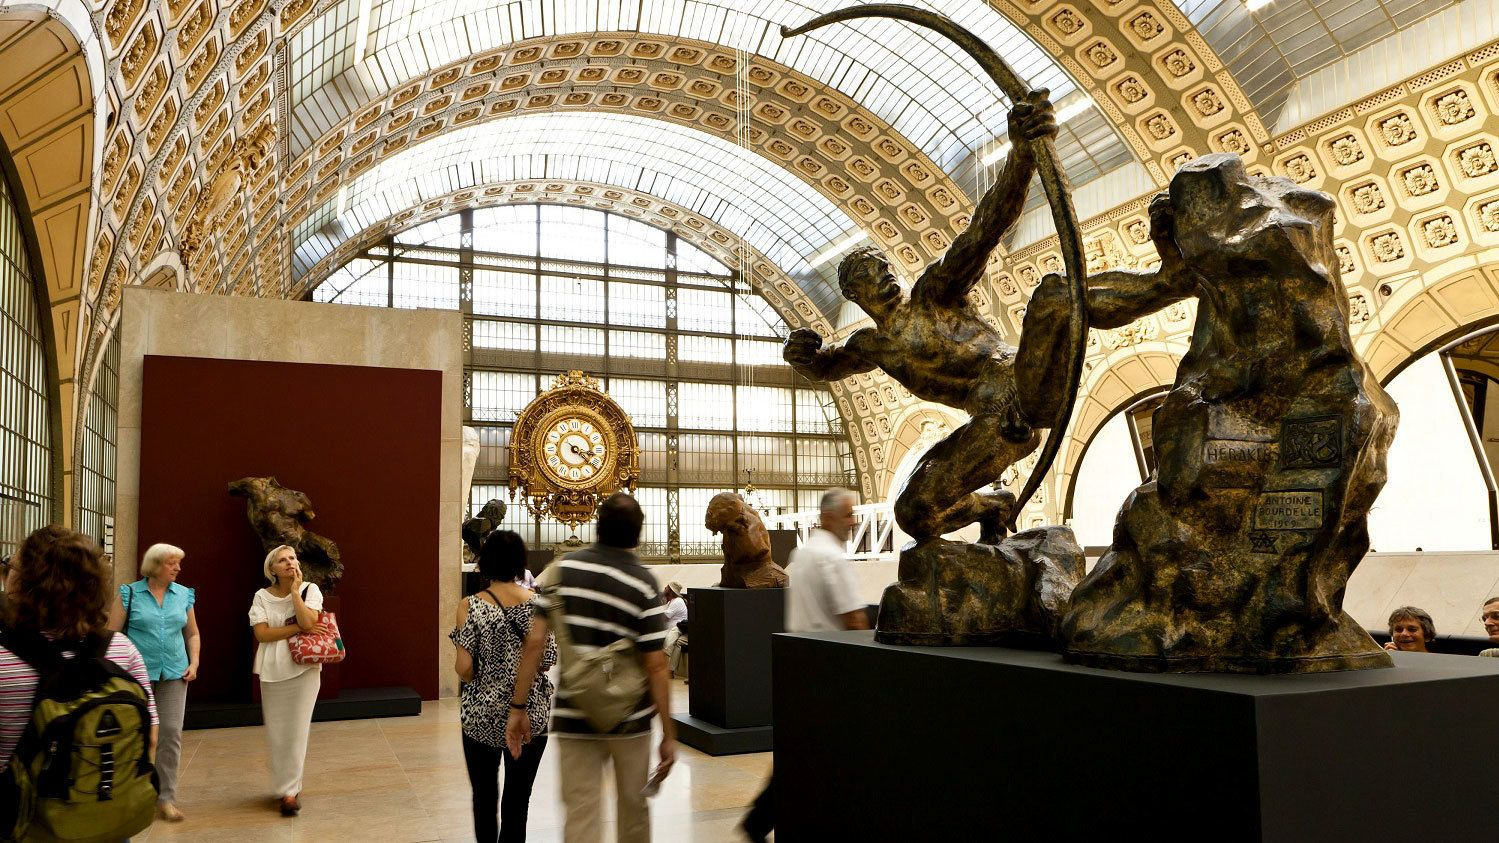 Statues inside the Orsay museum